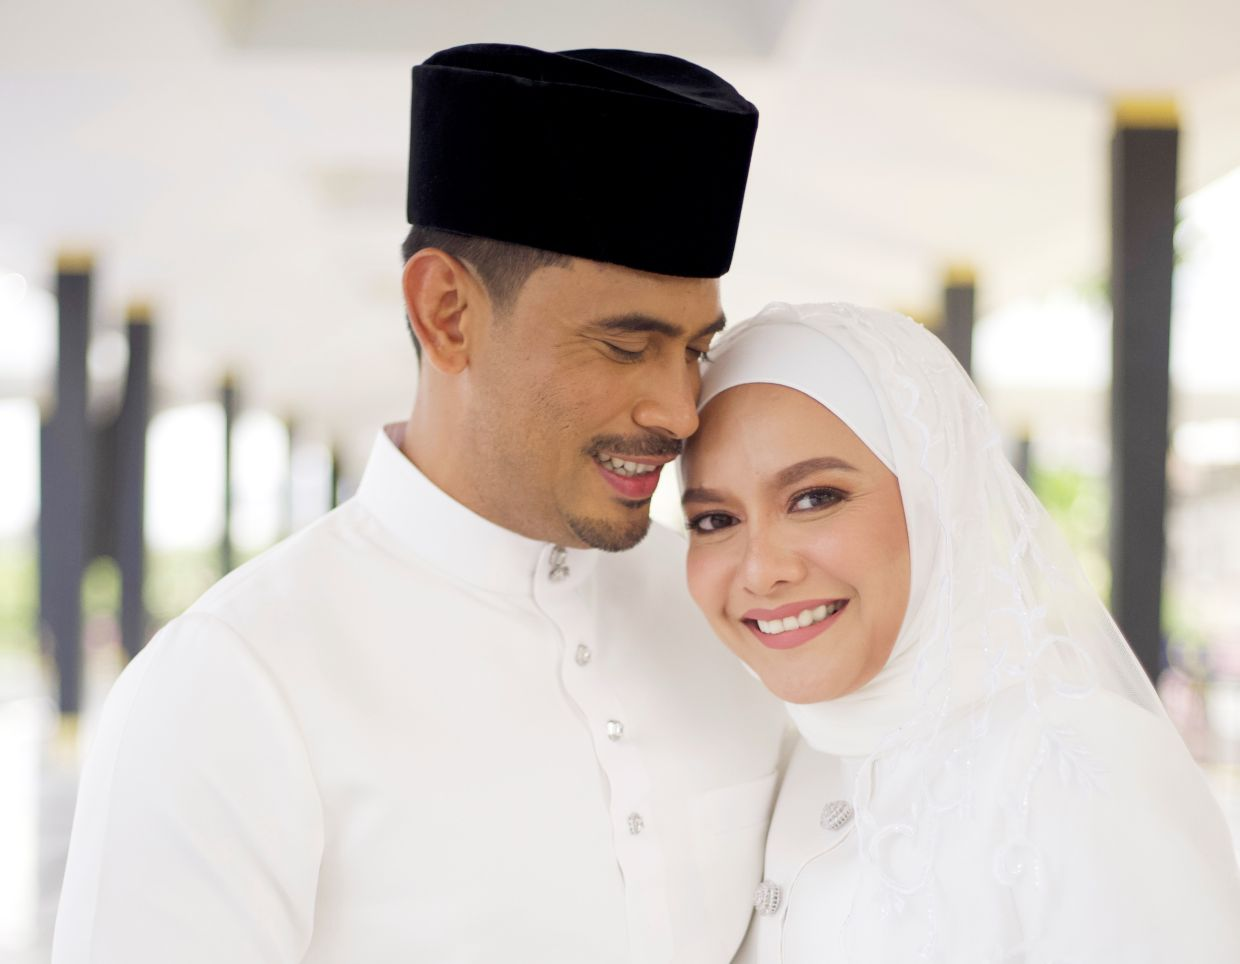 Remy Ishak and Ezza Yusof are now a married couple. Photo: riseandwin.asia/Instagram